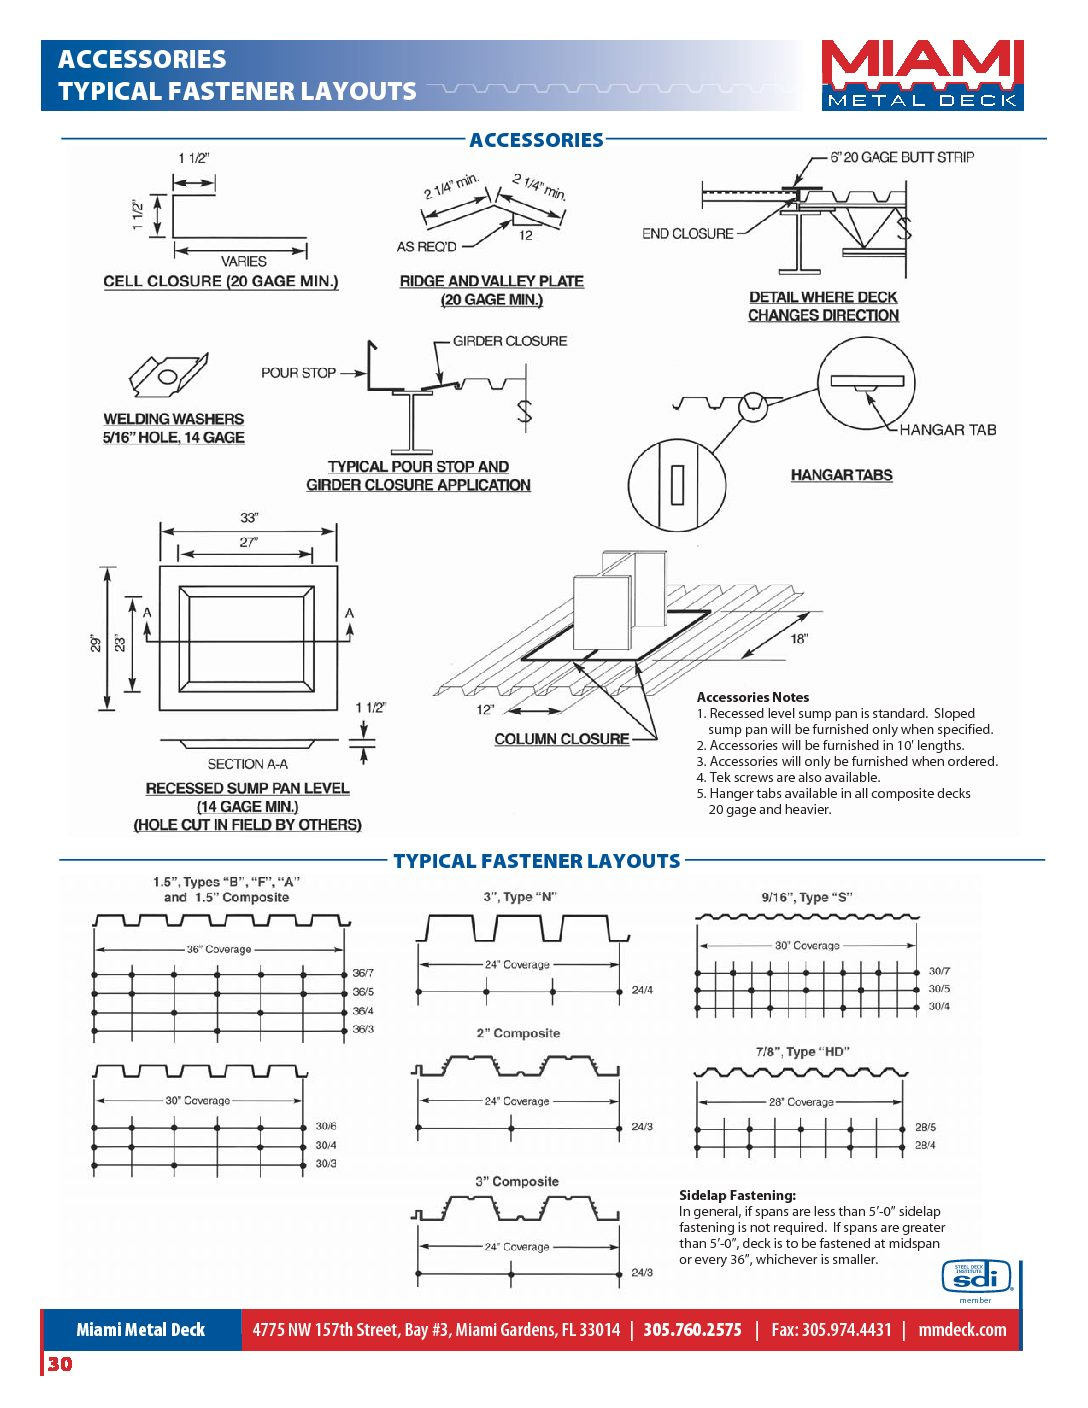 Decking Accessories and Fastener Layouts